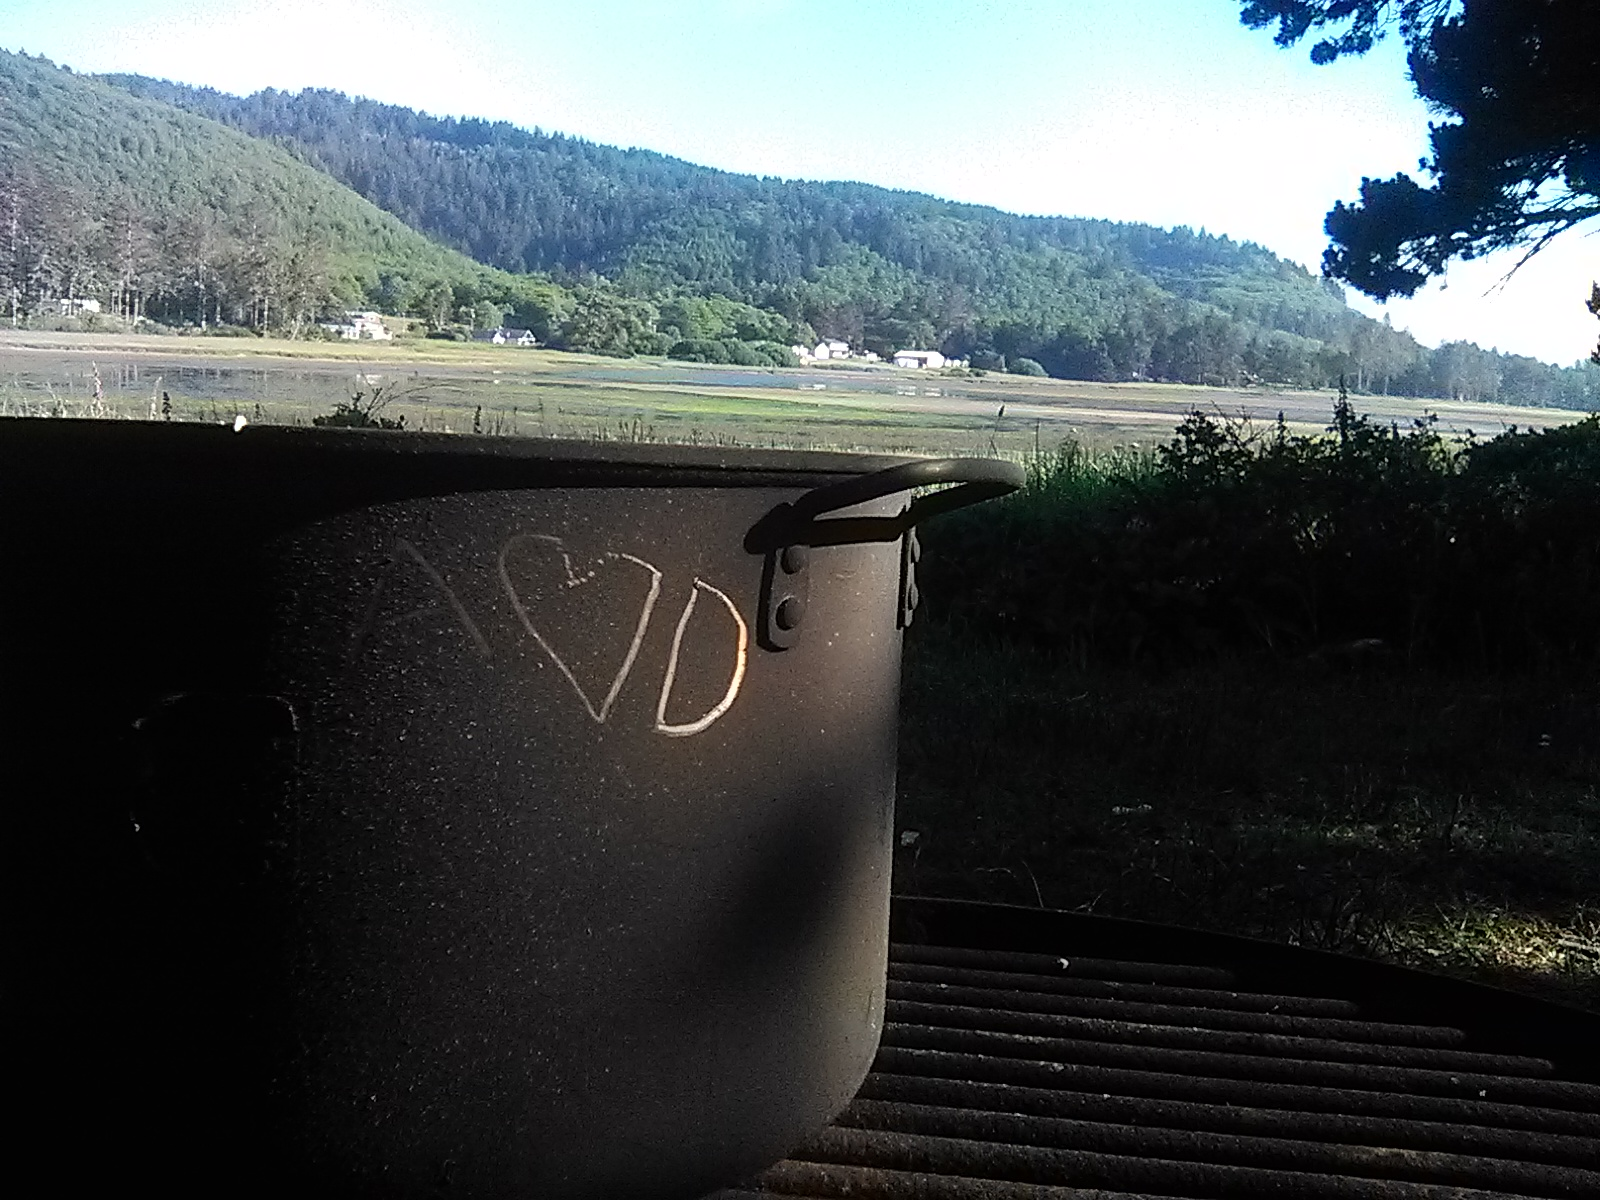 A <3 D scratched into the soot of the pot